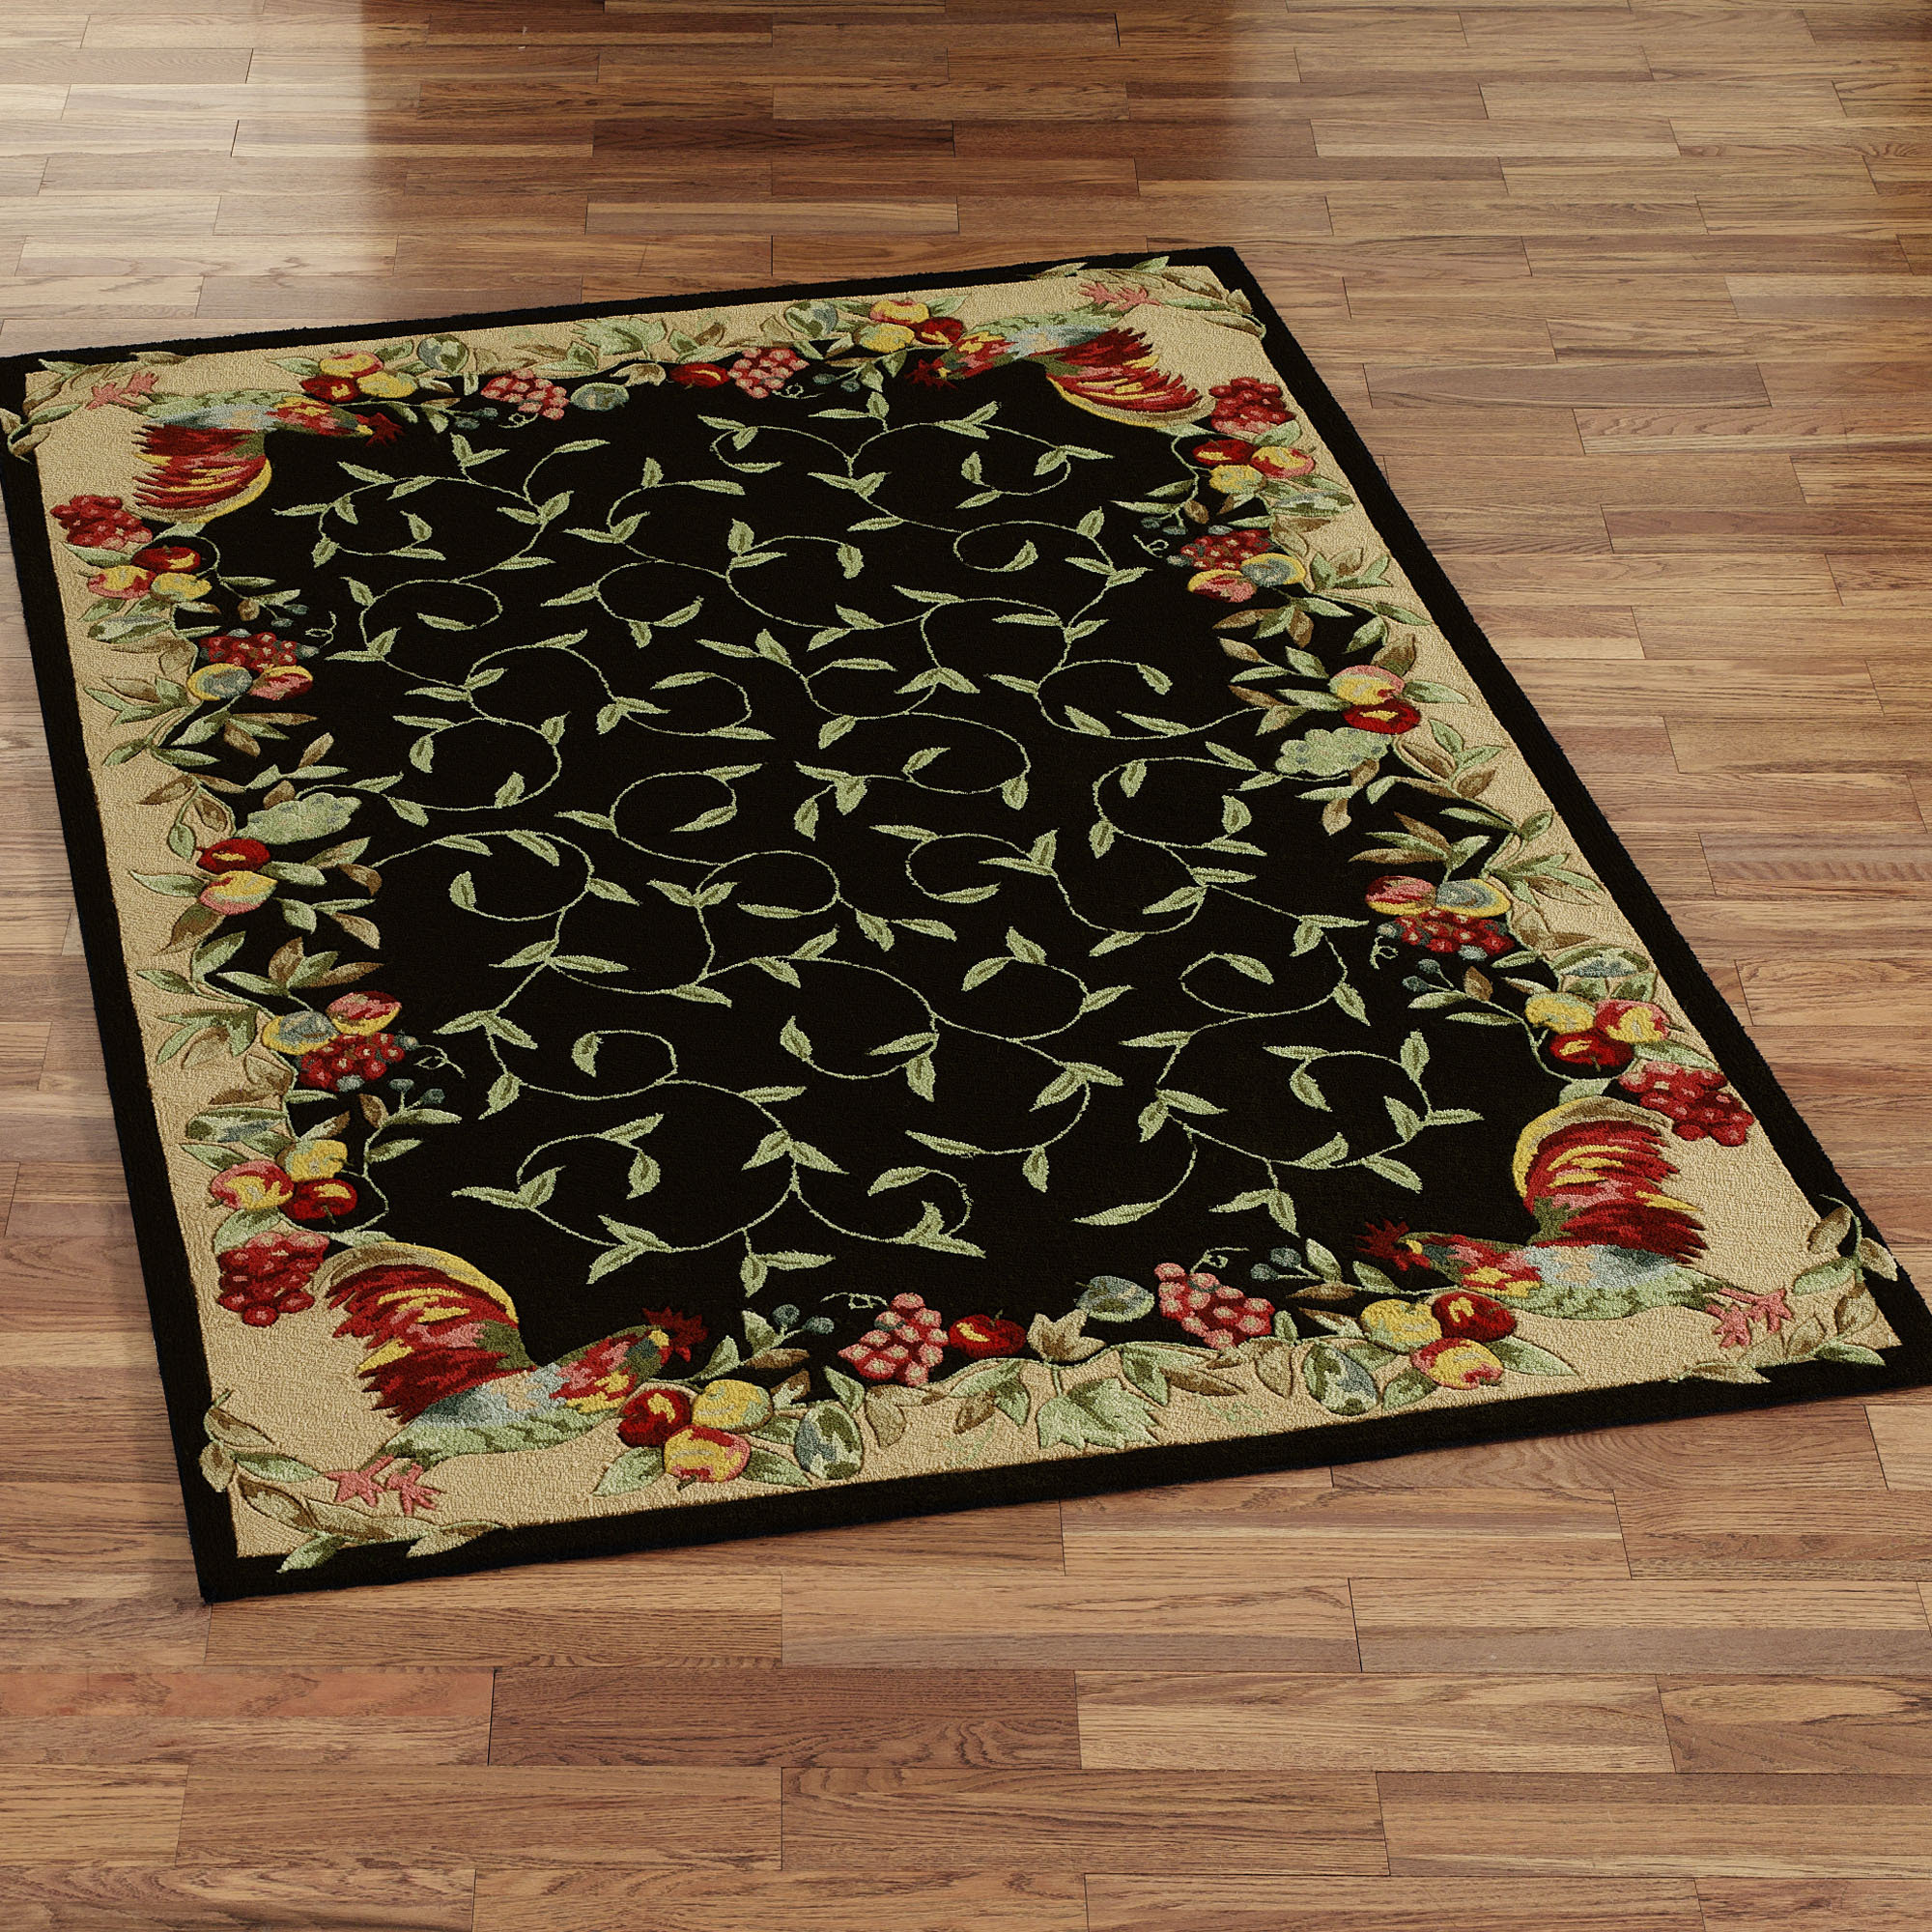 Rooster rugs kitchen rooster rugs YKXREGU